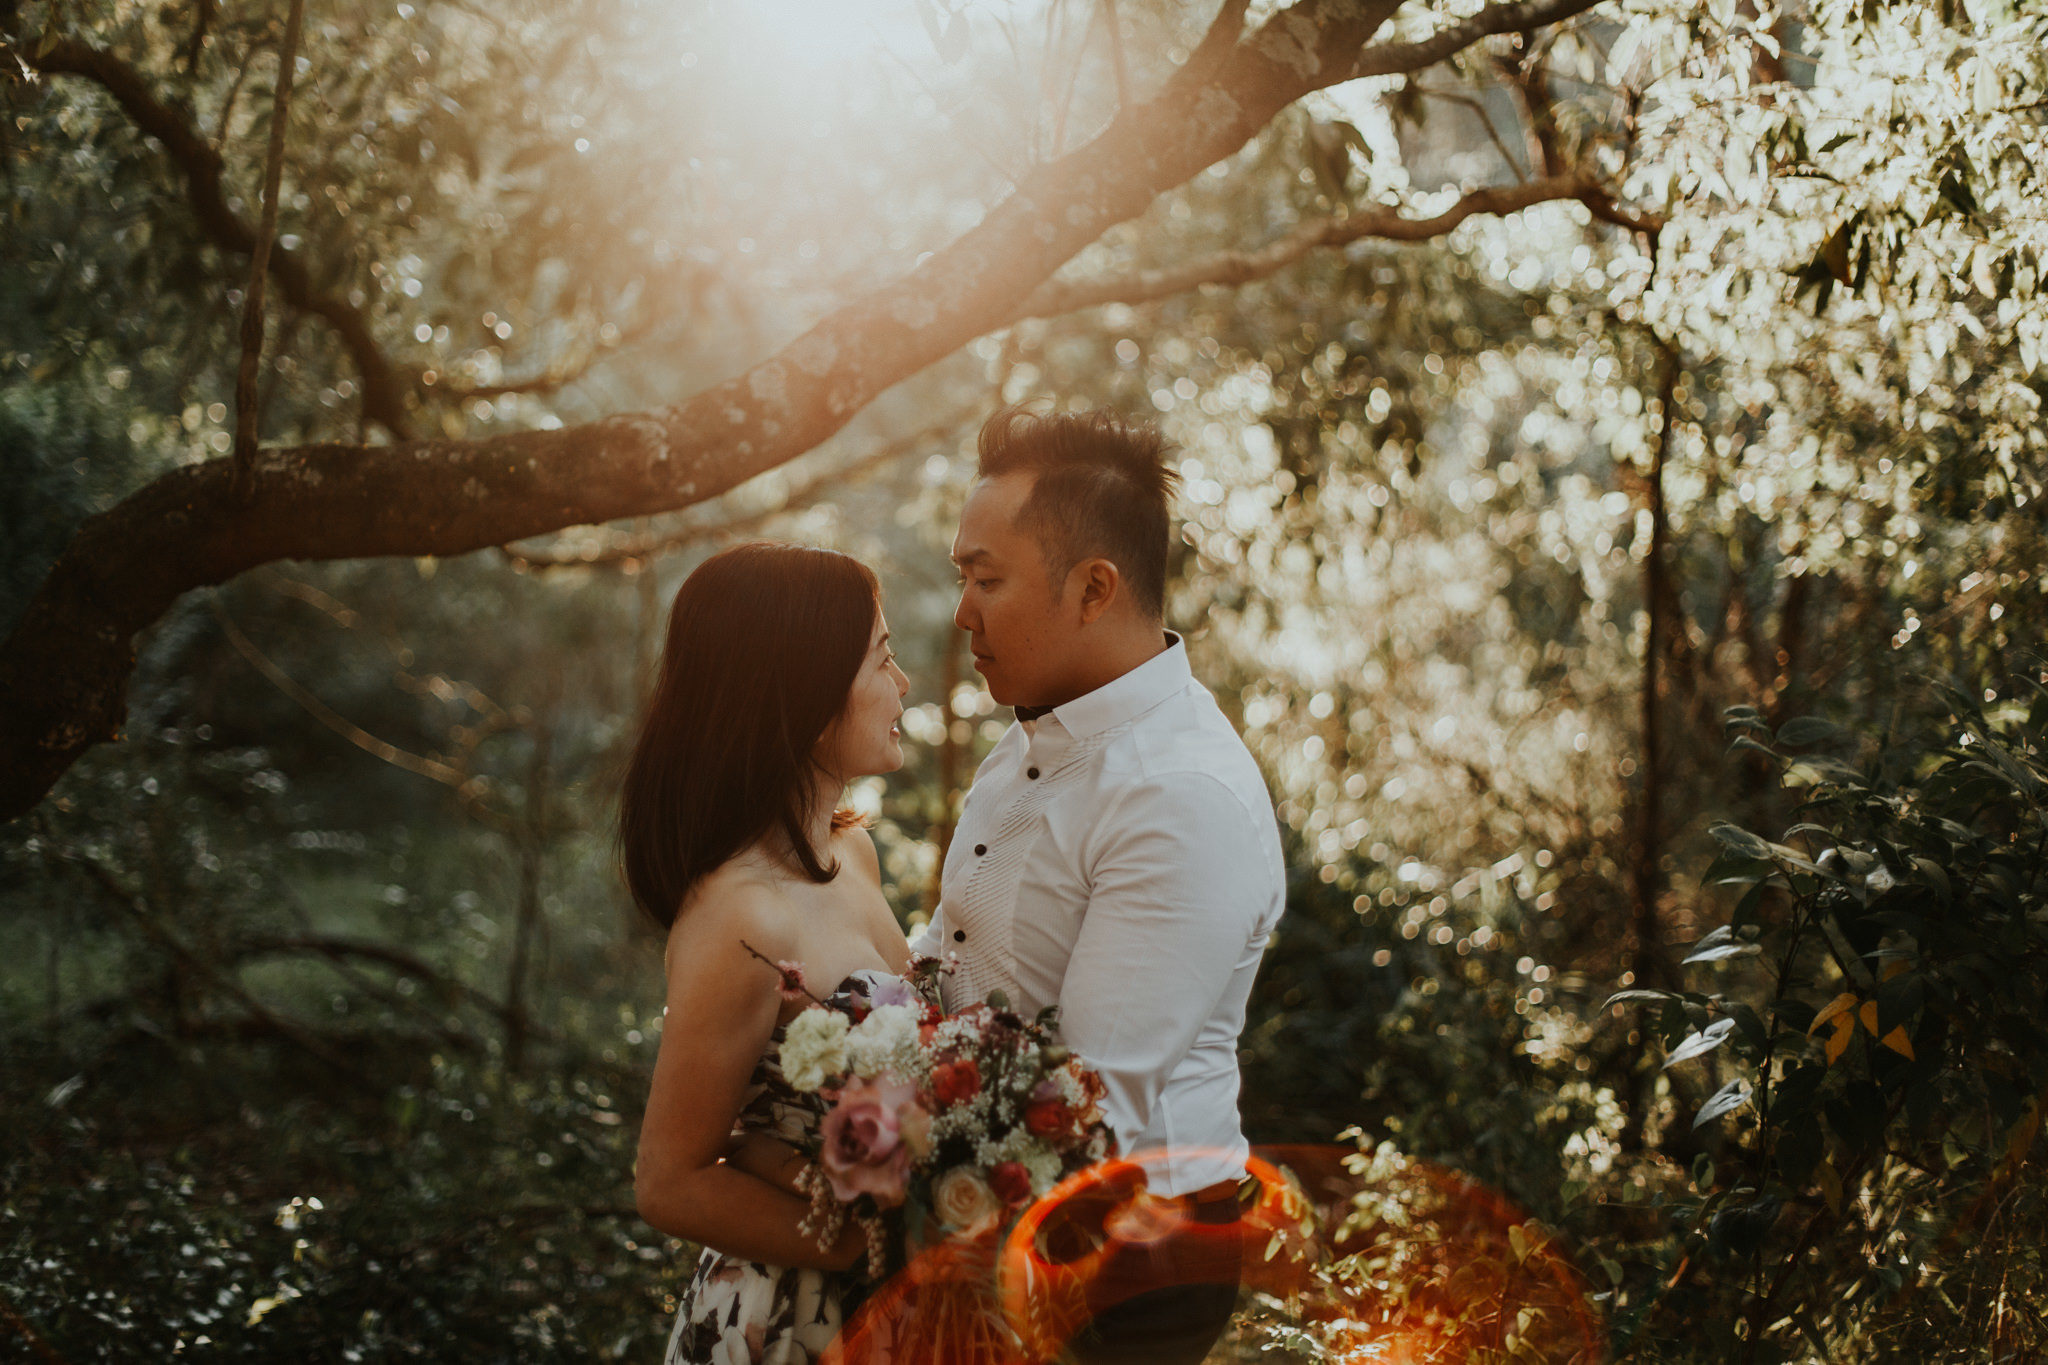 Destination Wedding Photographer Byron Bay Coffs Harbour Newcastle Brisbane Sydney Forster Port Macquarie Intimate Elopement Australia New Zealand Nicola Bodle